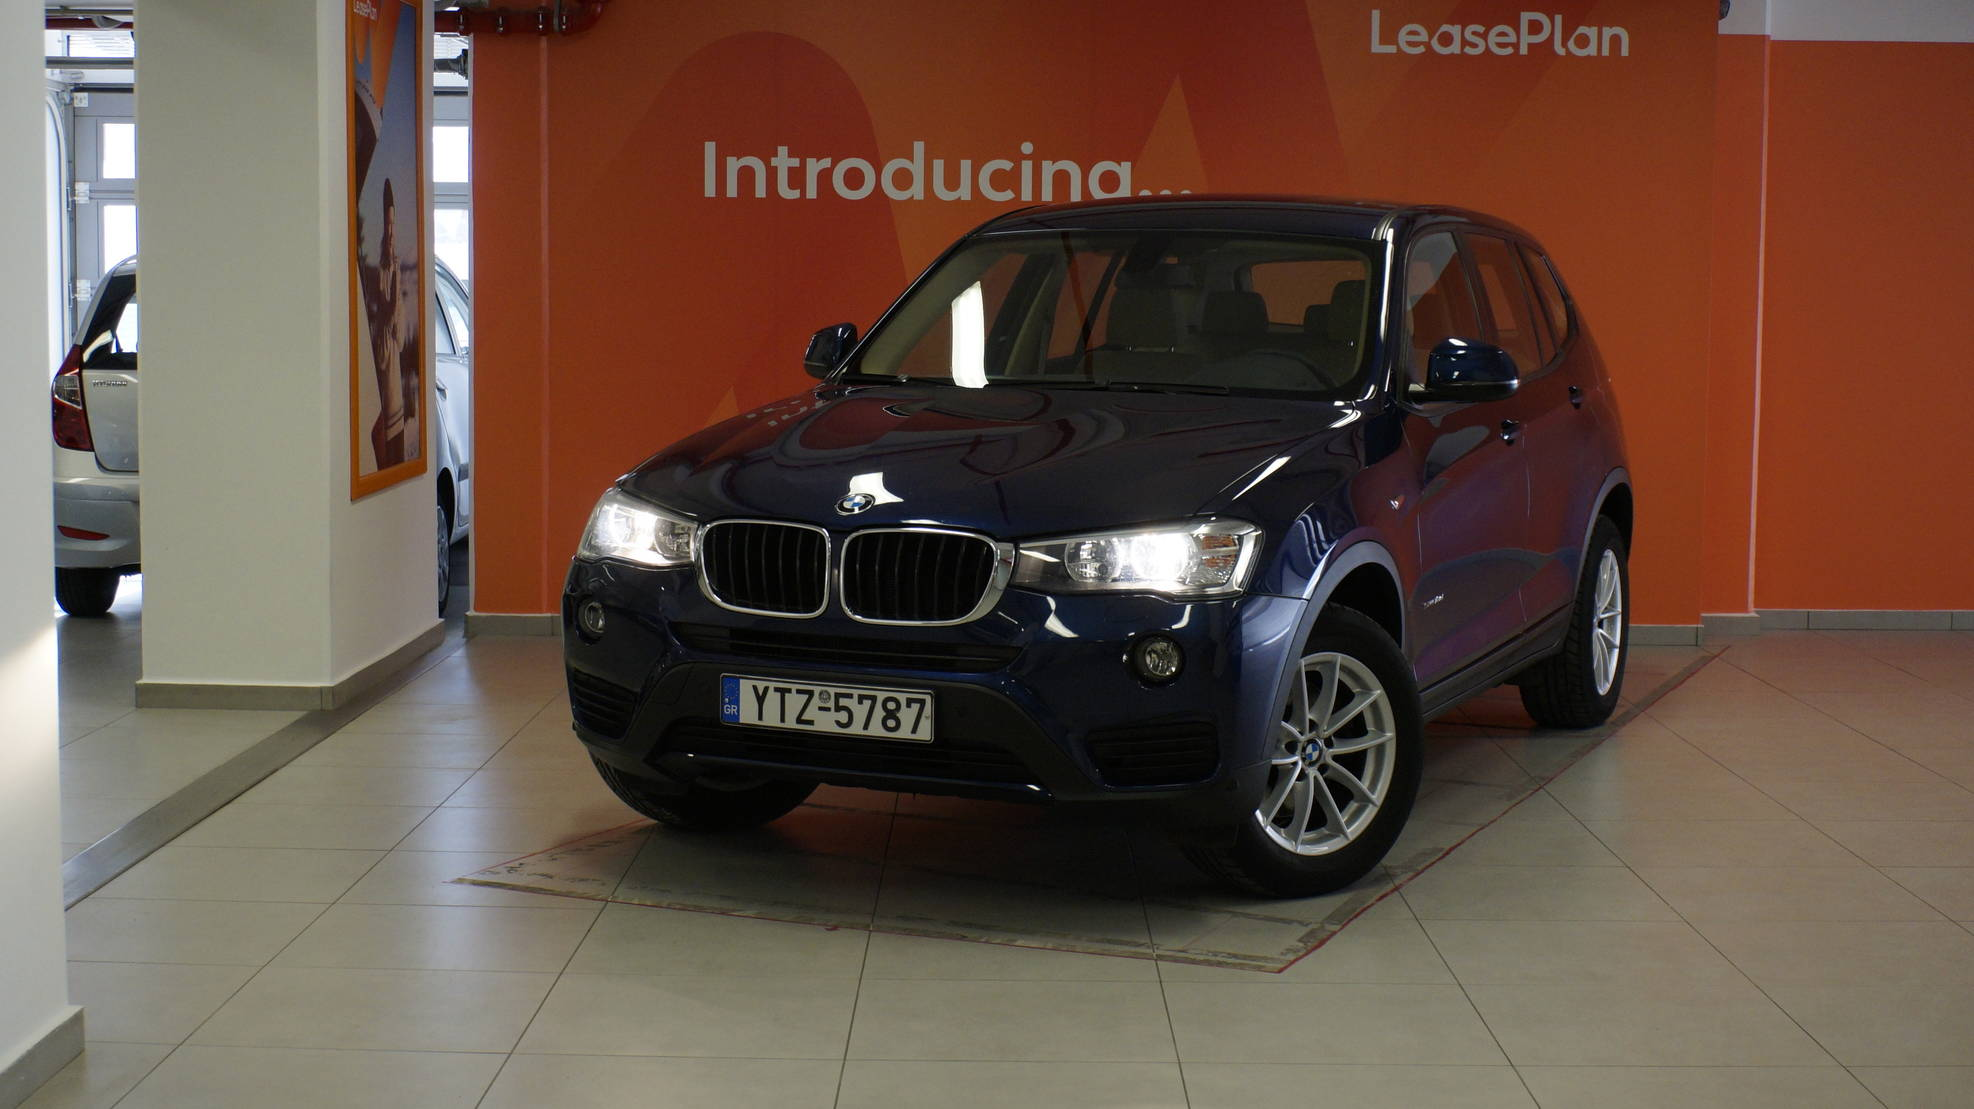 BMW X3 2.0 sDrive18d 150hp detail2